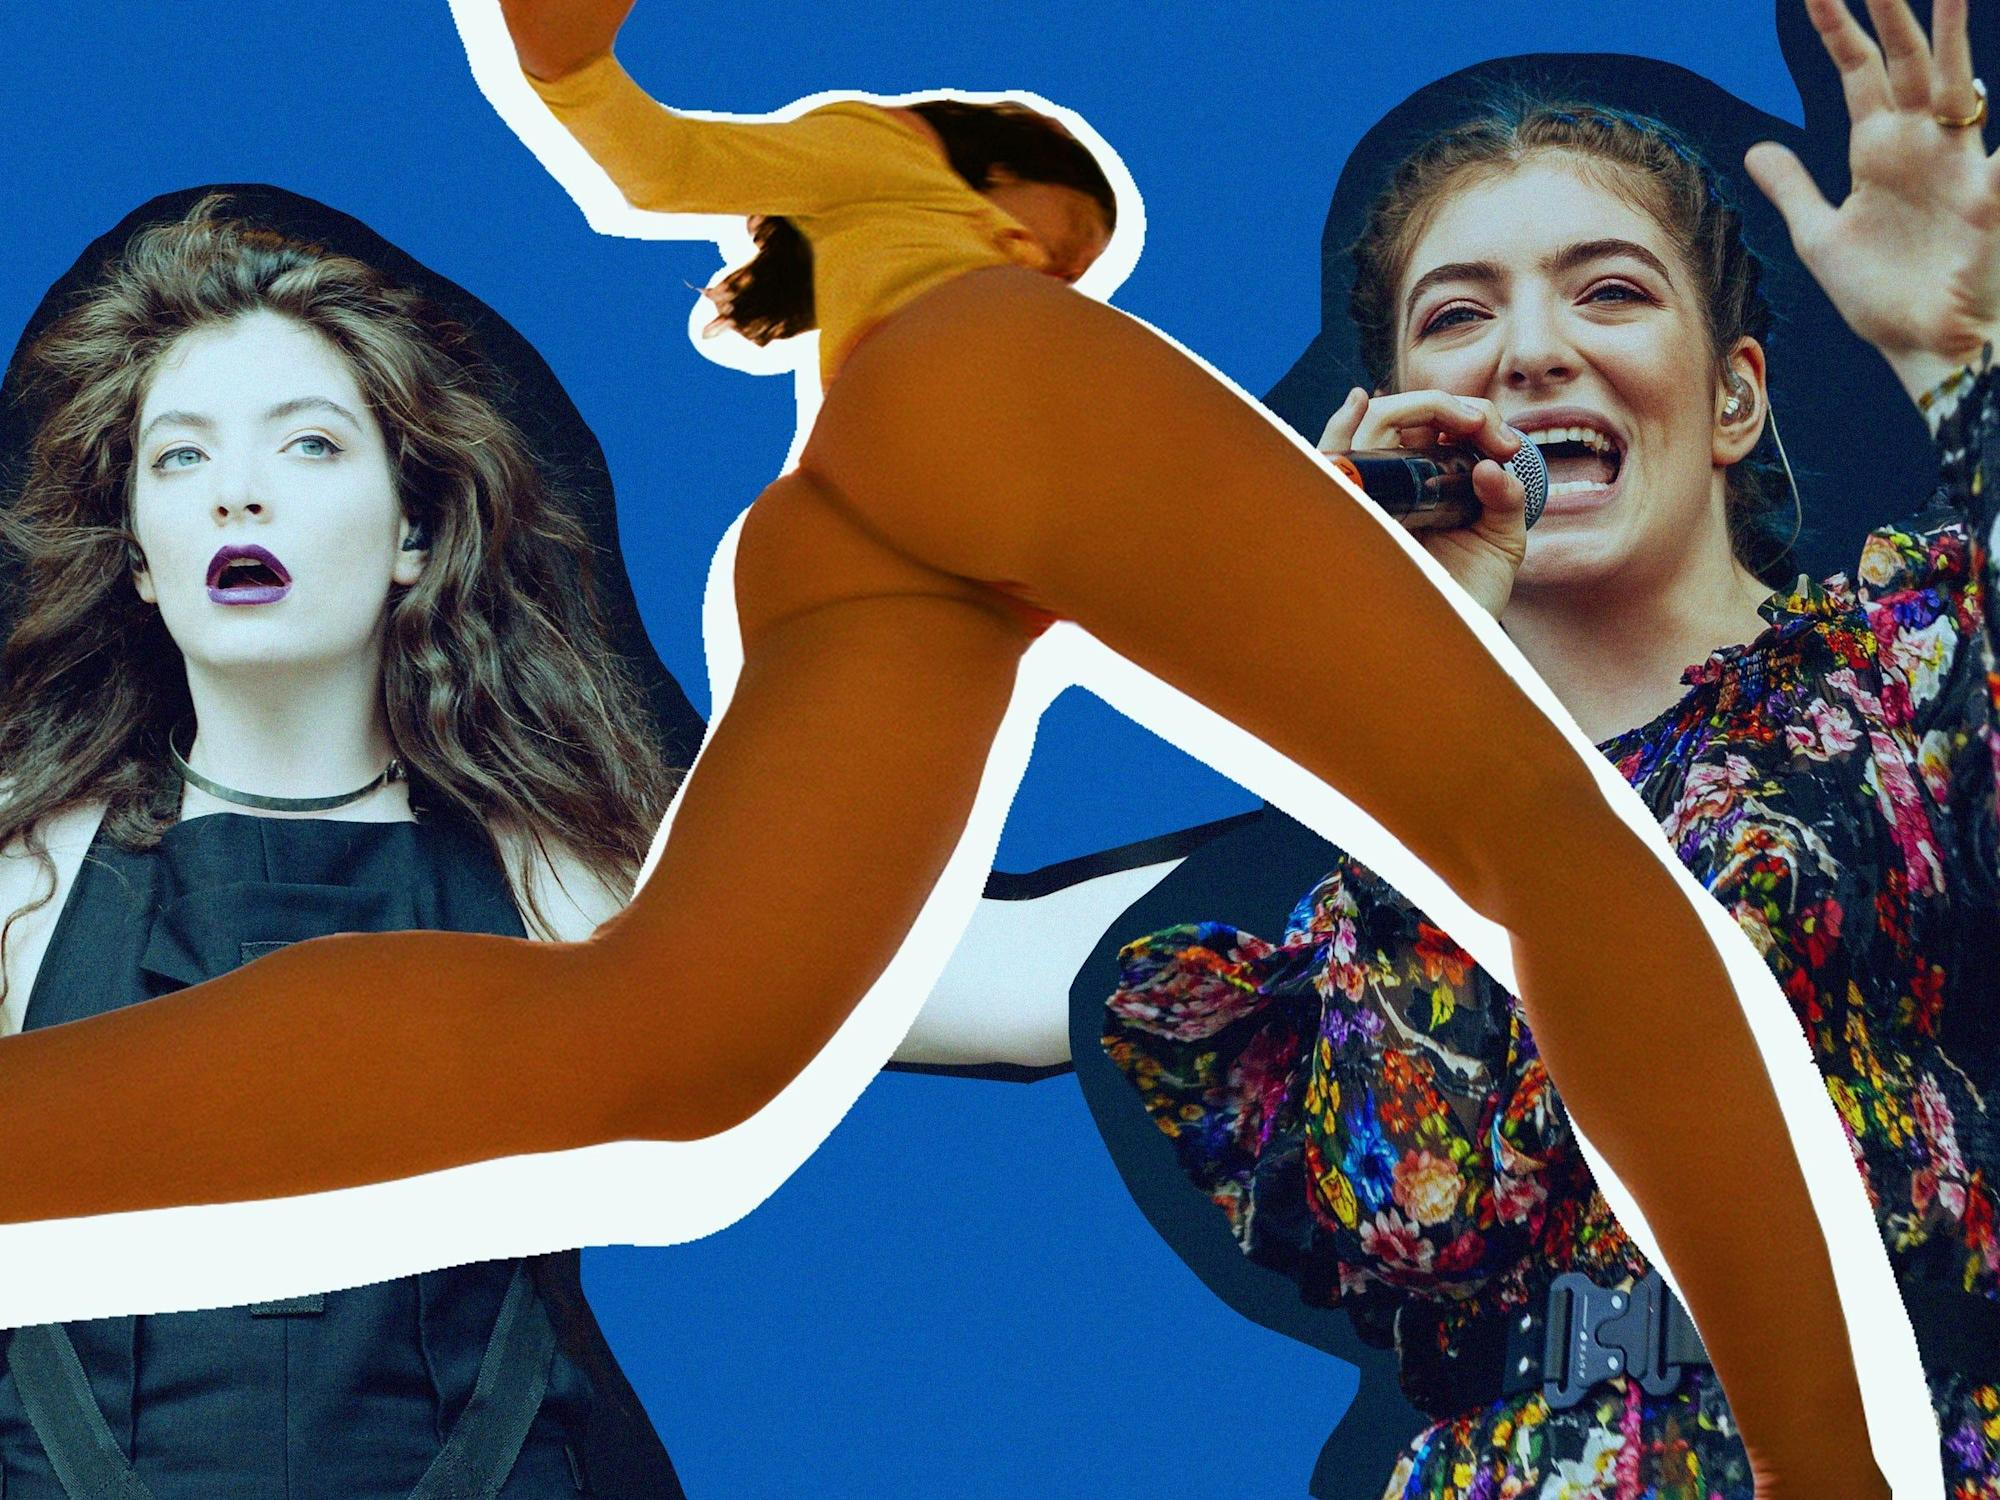 Lorde just announced the release date of her new album ...